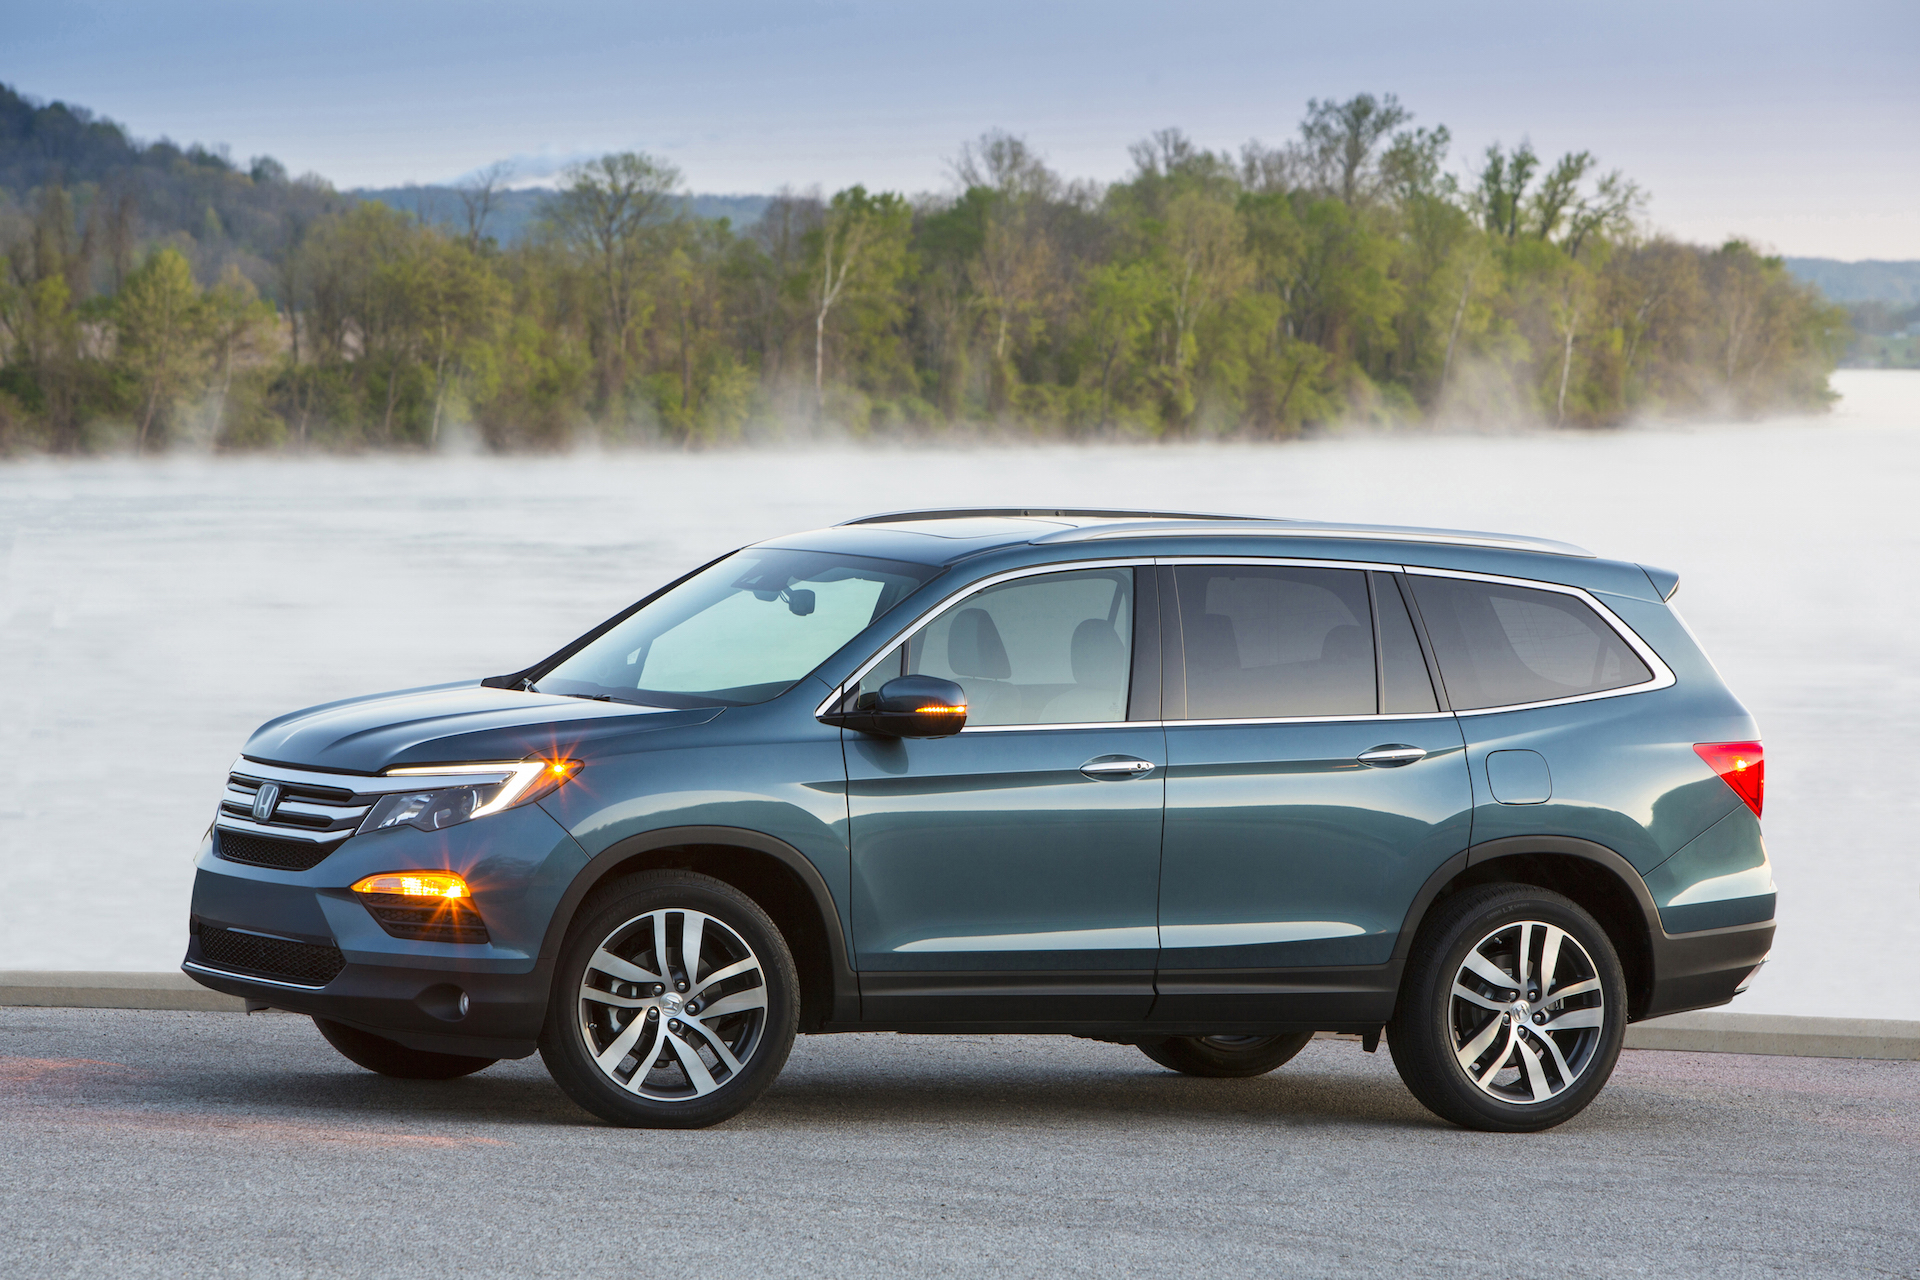 Hyundai santa fe vs honda pilot compare cars for Honda pilot images